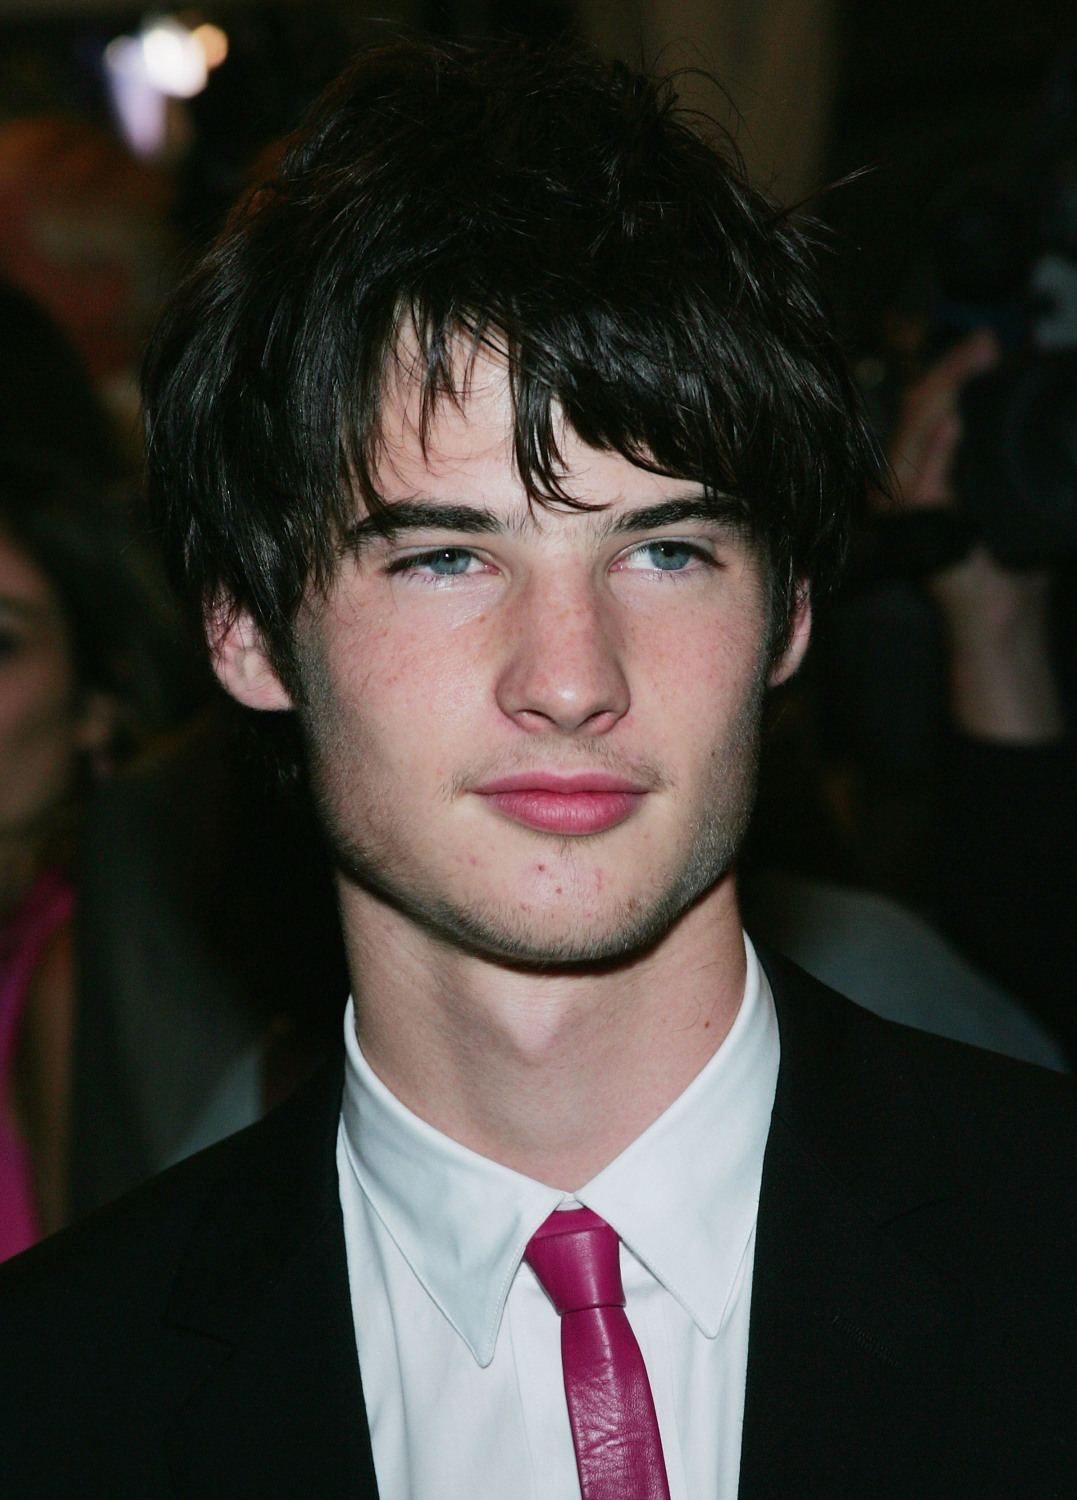 cinerock07 le blog cin de roland tom sturridge acteur britannique. Black Bedroom Furniture Sets. Home Design Ideas